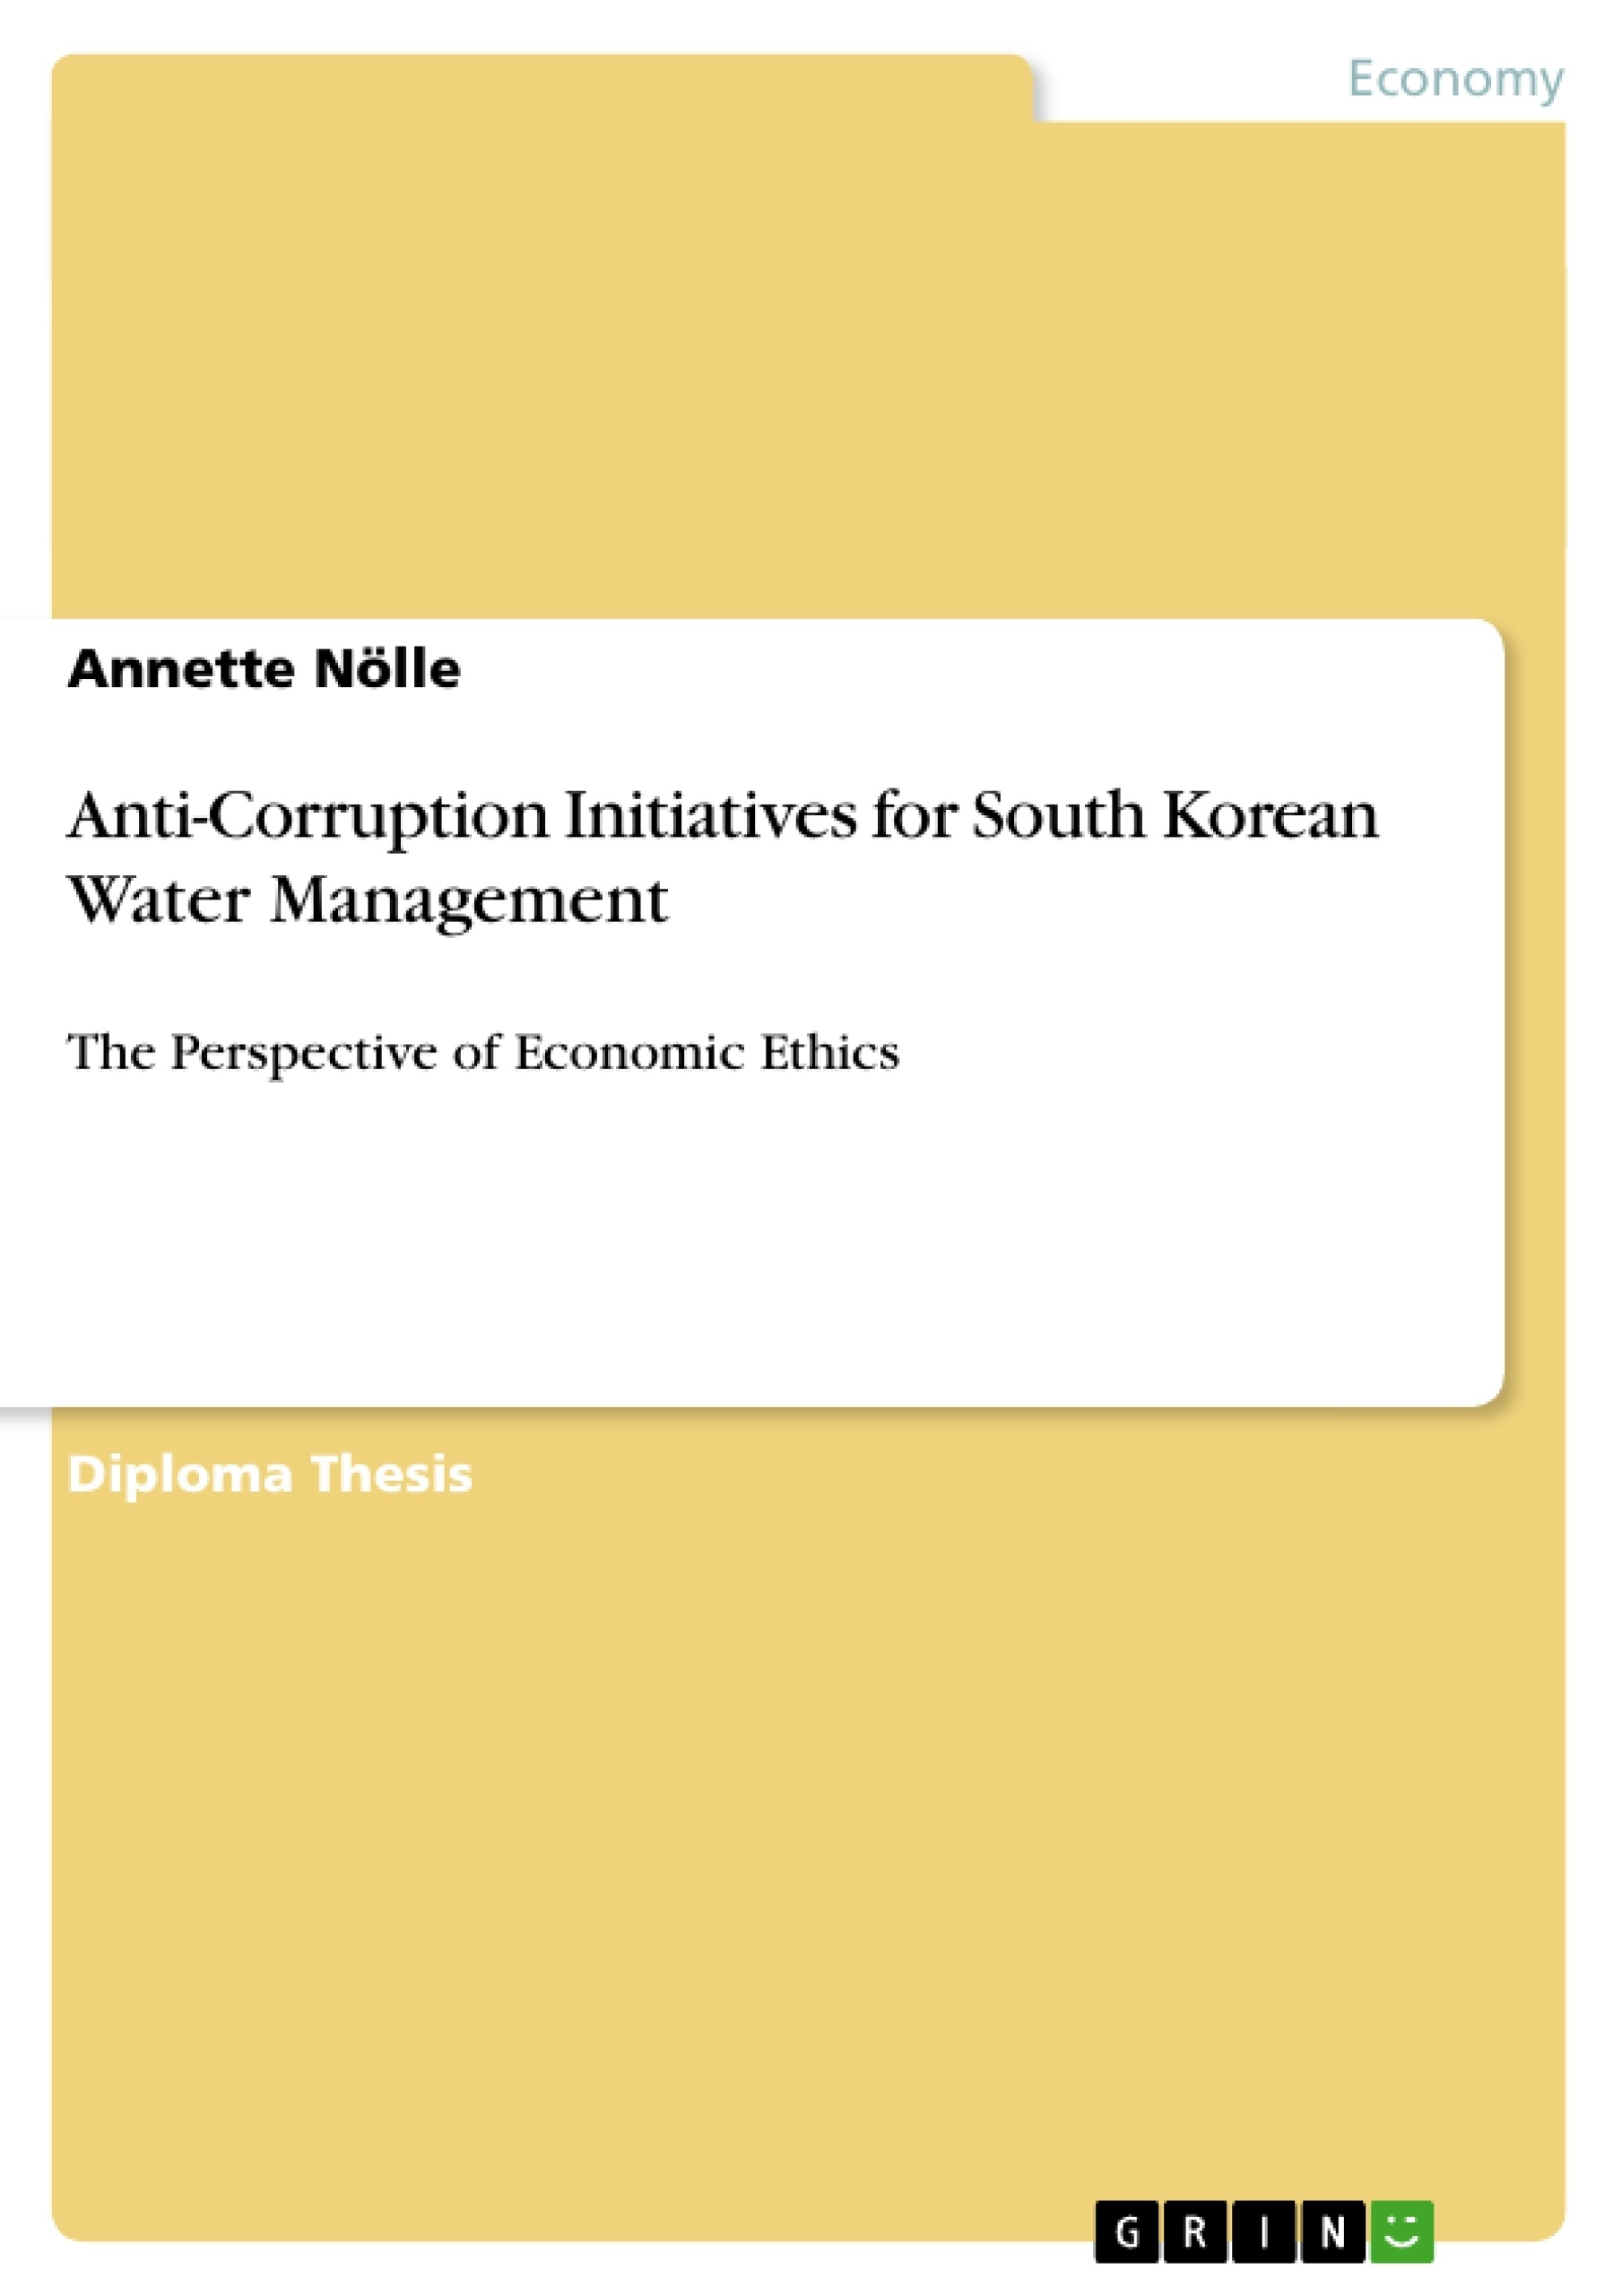 Title: Anti-Corruption Initiatives for South Korean Water Management